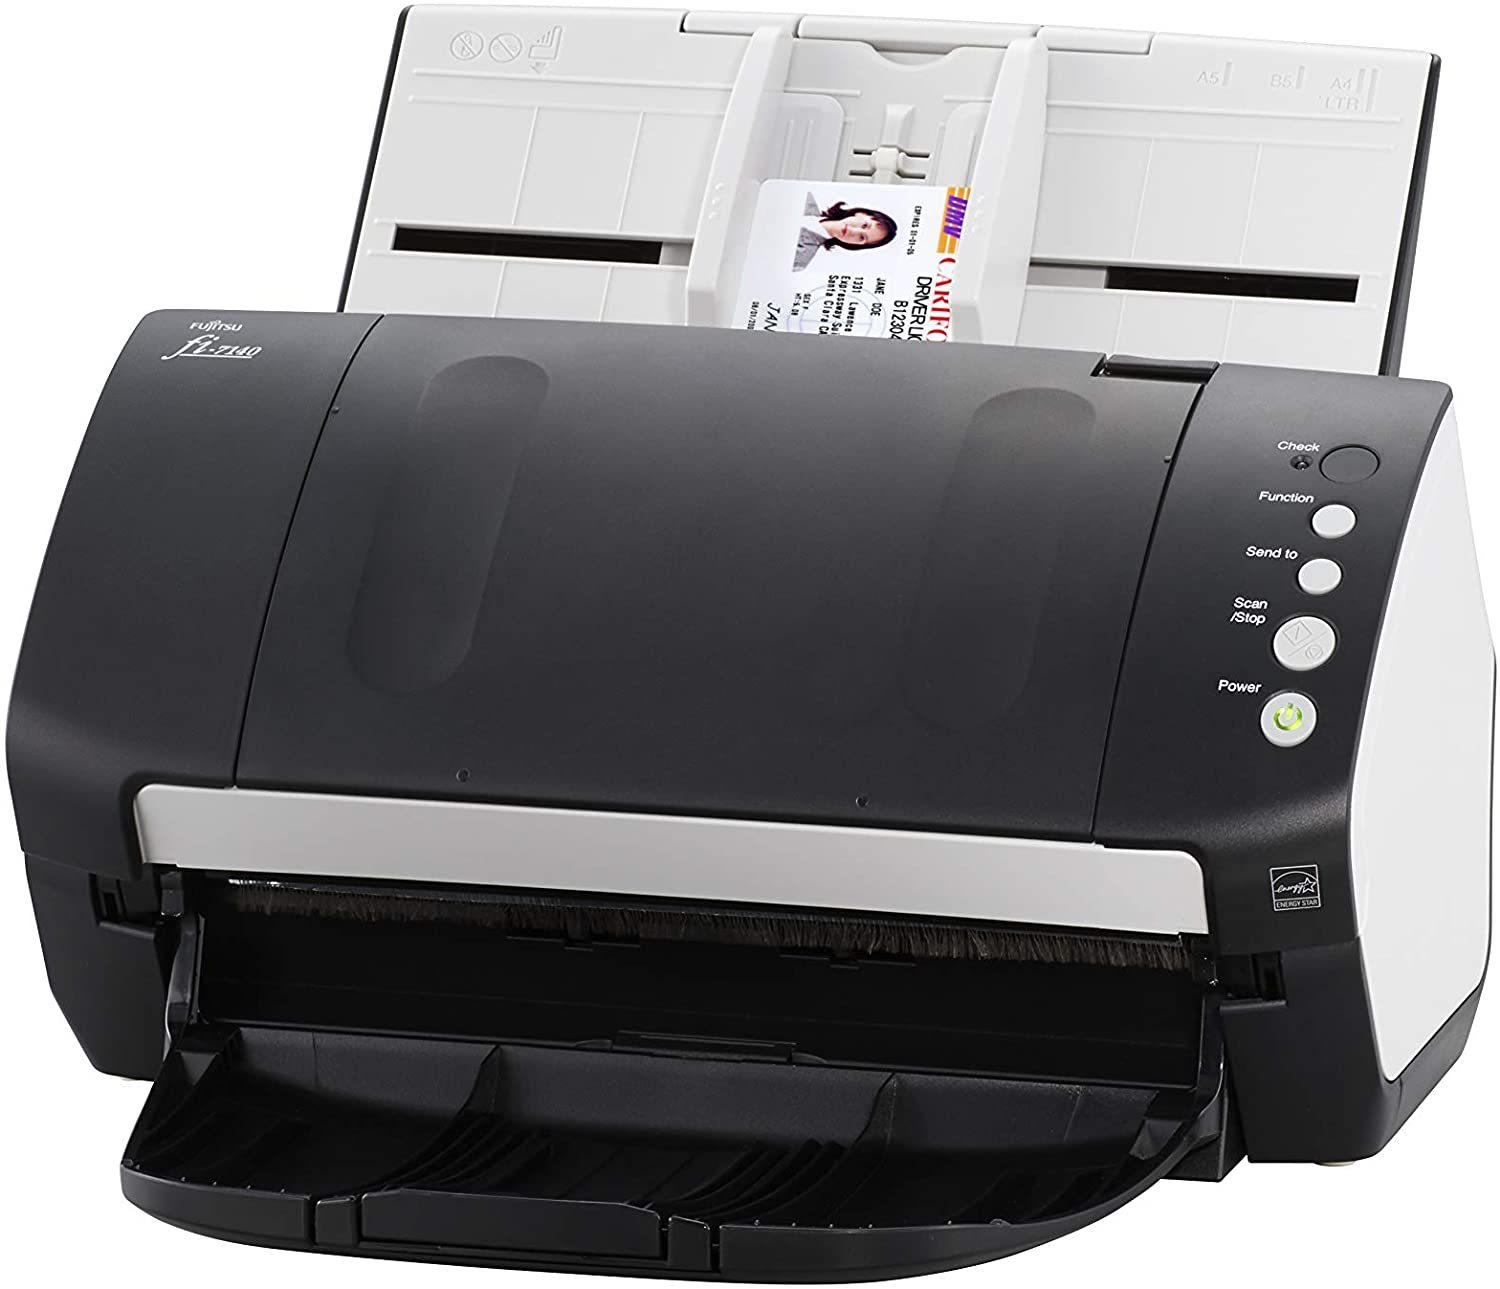 FI-7140 Color Duplex Scanner PA03670-B105